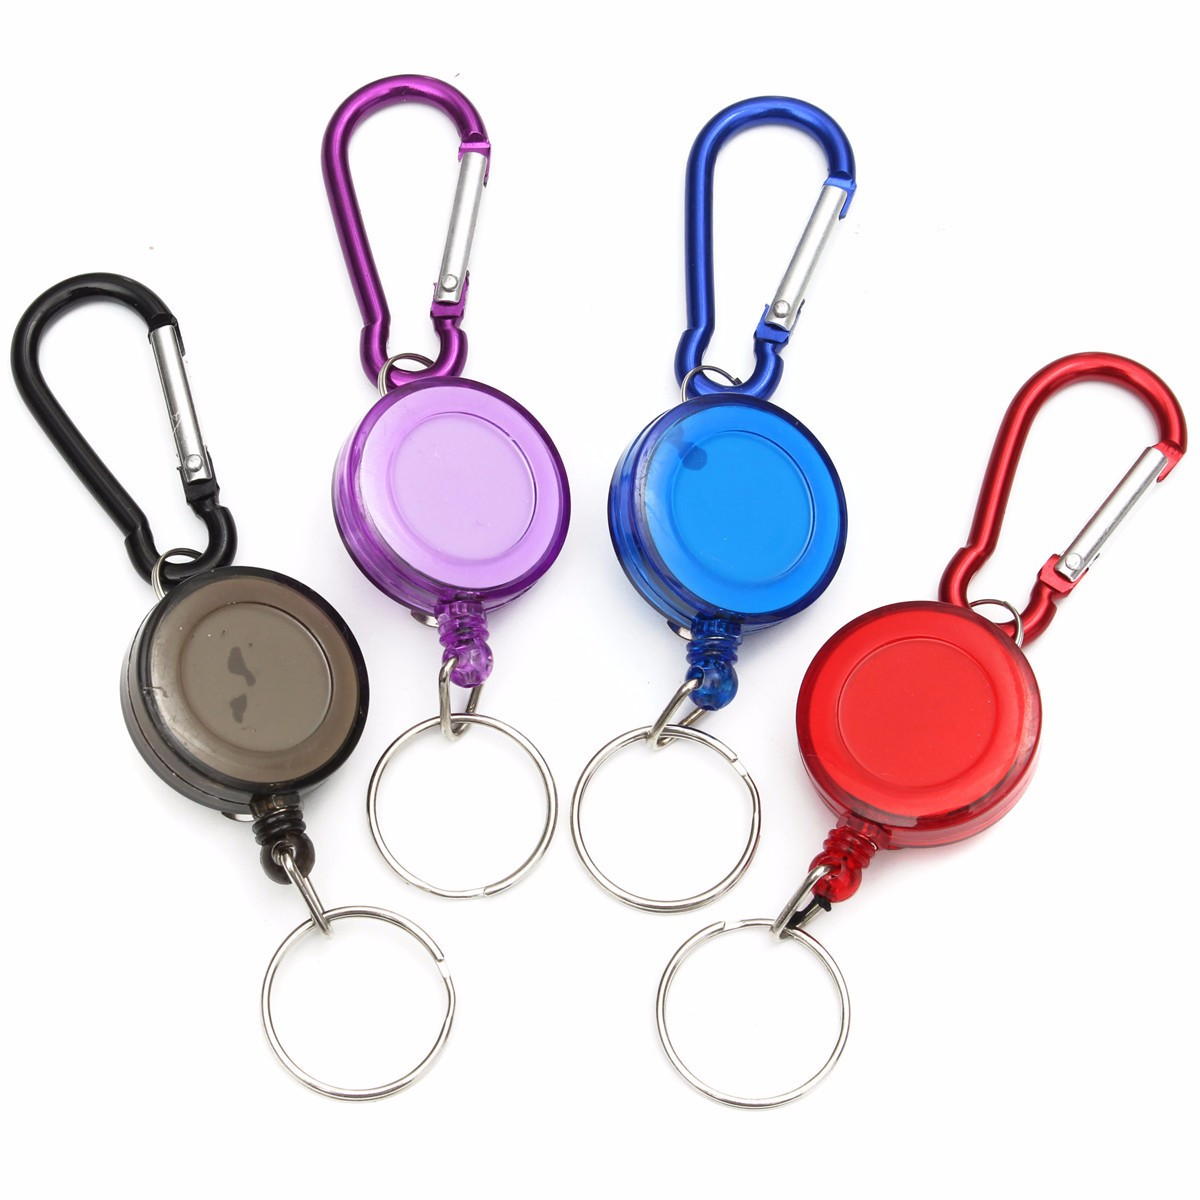 High quality mulitifunctional Multicolor Badge Spreader Carabiner Recoil Retractable Reel Strap Belt Clip Key Chain(China (Mainland))